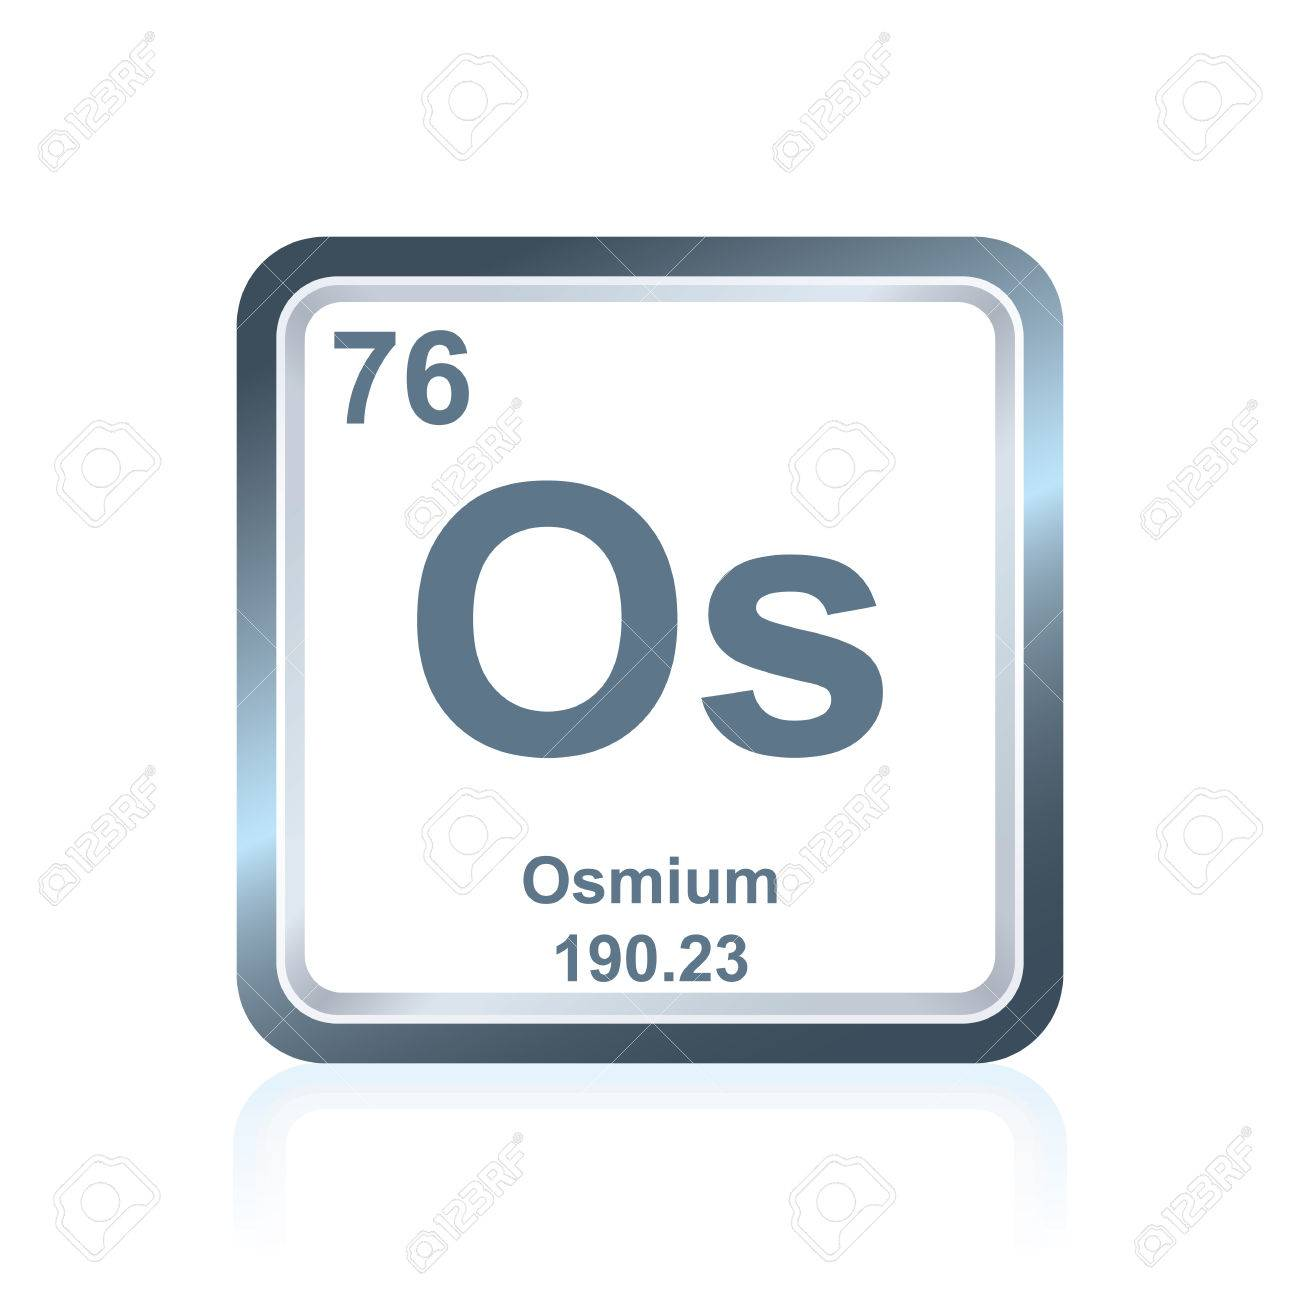 Symbol of chemical element osmium as seen on the periodic table symbol of chemical element osmium as seen on the periodic table of the elements including urtaz Gallery